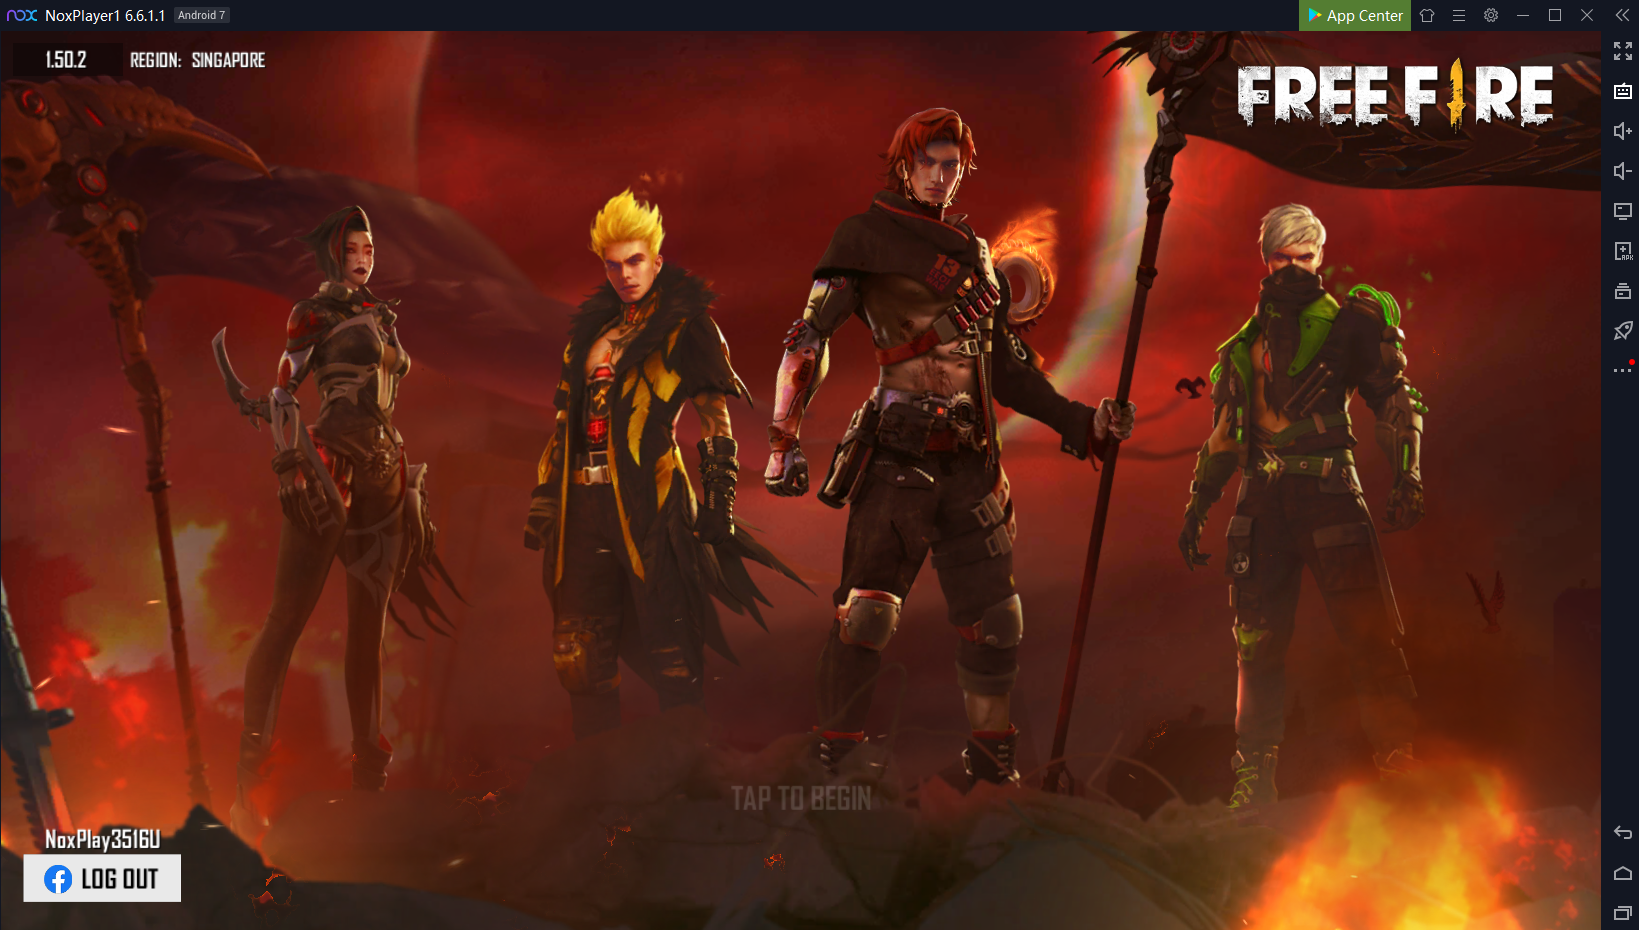 Play Garena Free Fire On Pc With Noxplayer Top Up With Codashop Noxplayer